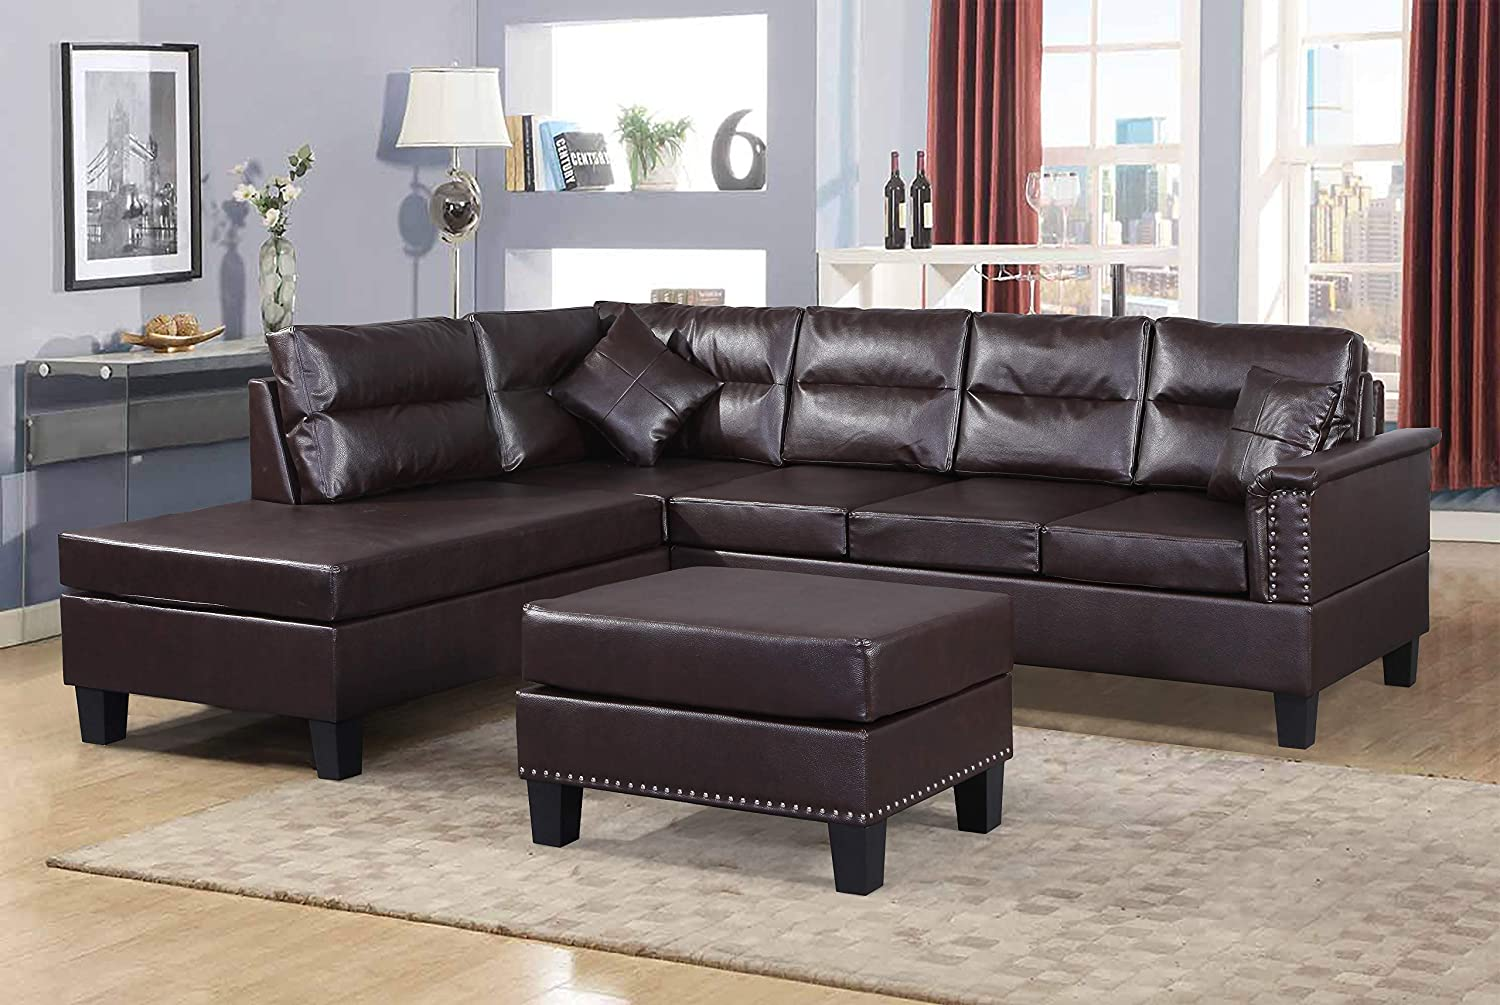 Amazon.com: Harper & Bright Designs 3-Piece Sectional Sofa Set PU ...